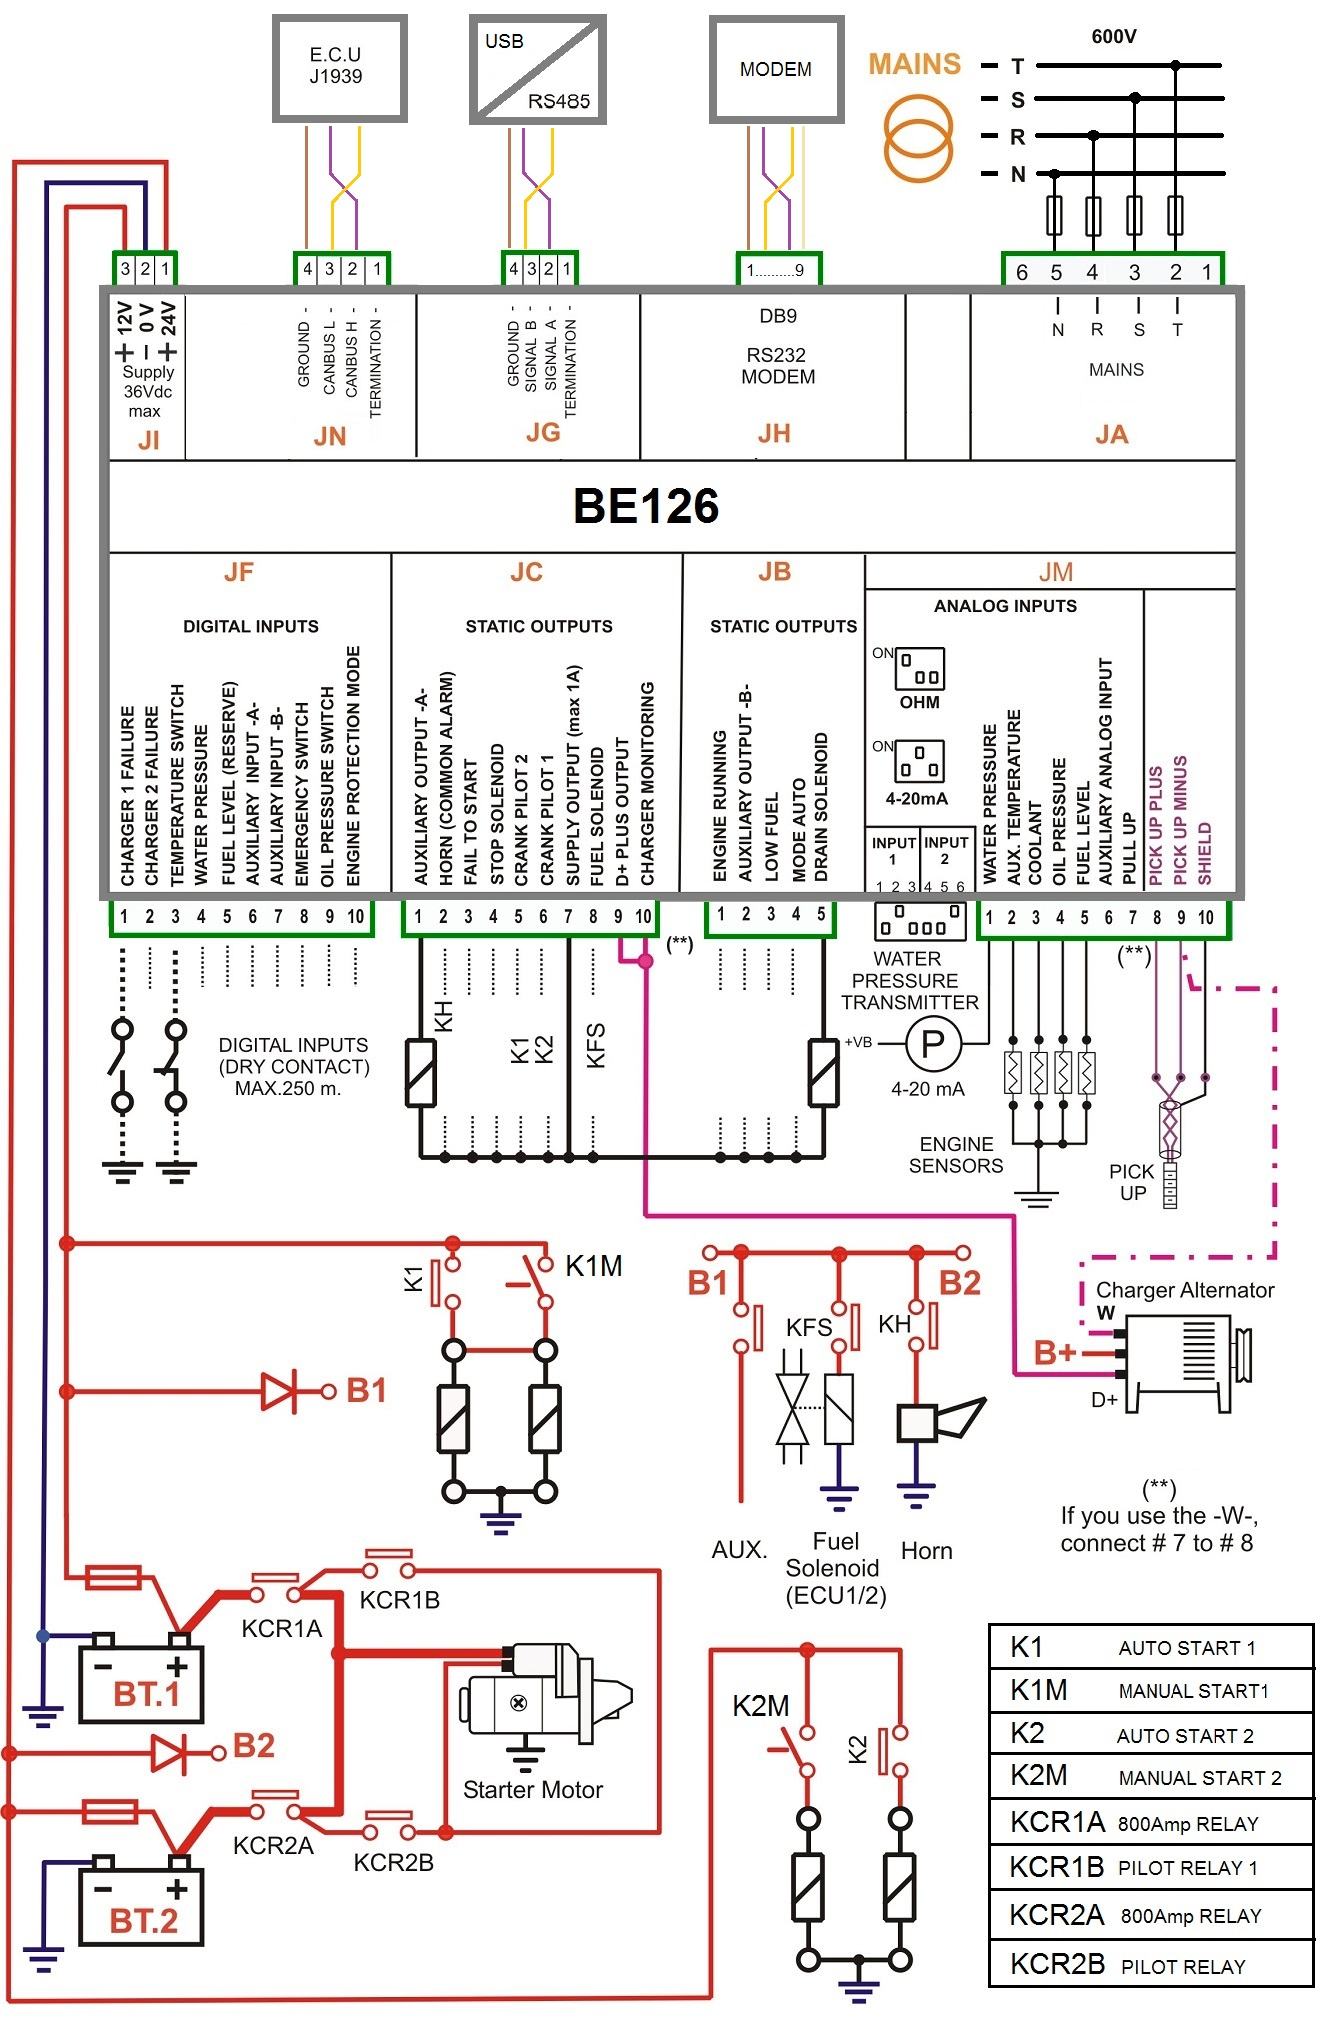 fire pump controller wiring diagram genset controller rh bernini design com fire pump wiring requirements fire pump wiring codes